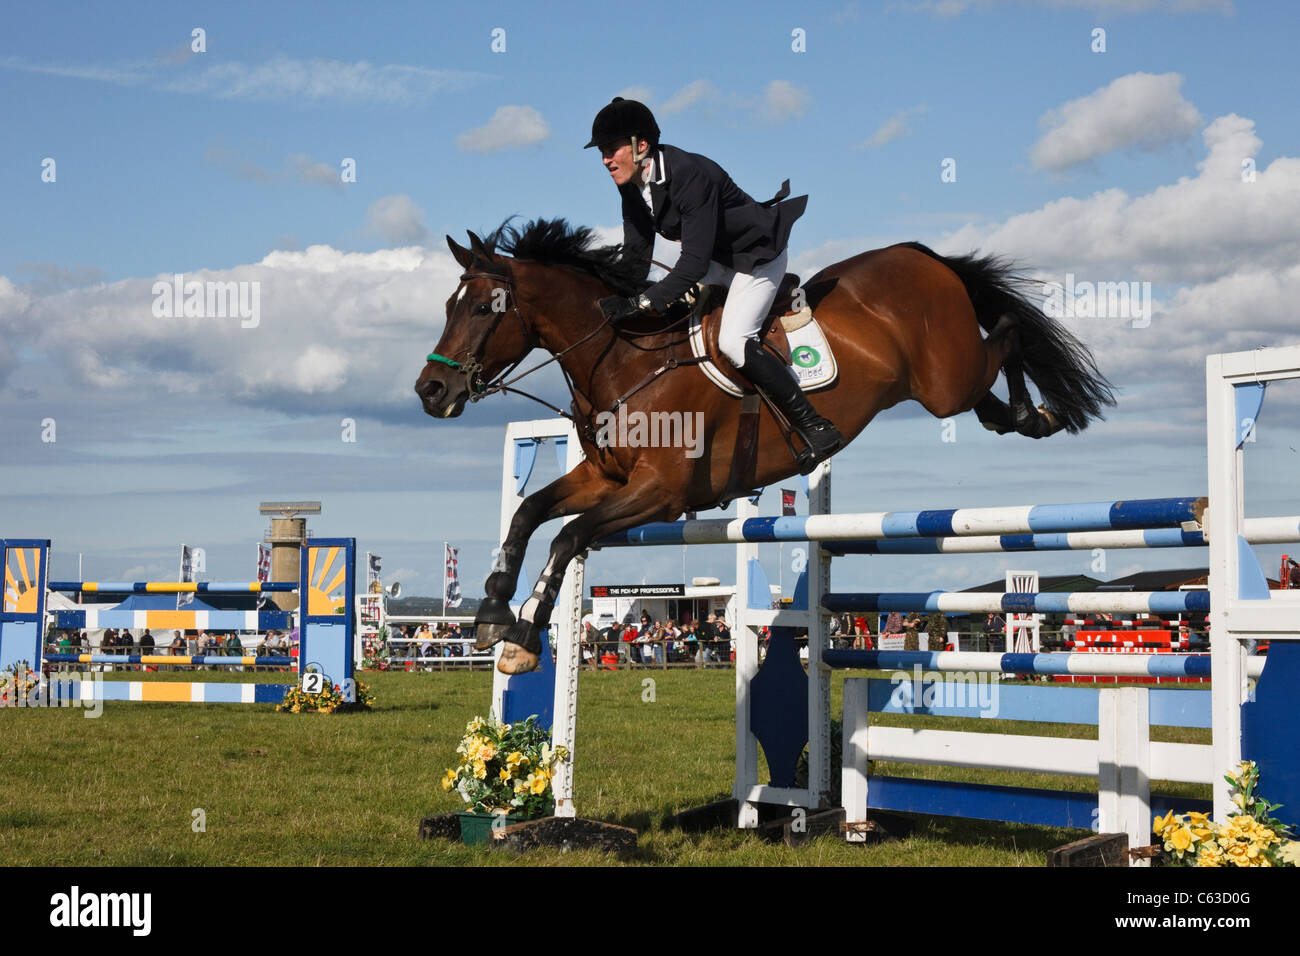 North Wales, UK. International show jumping event with horse and jockey clearing the jumps at Anglesey Show in Mona - Stock Image